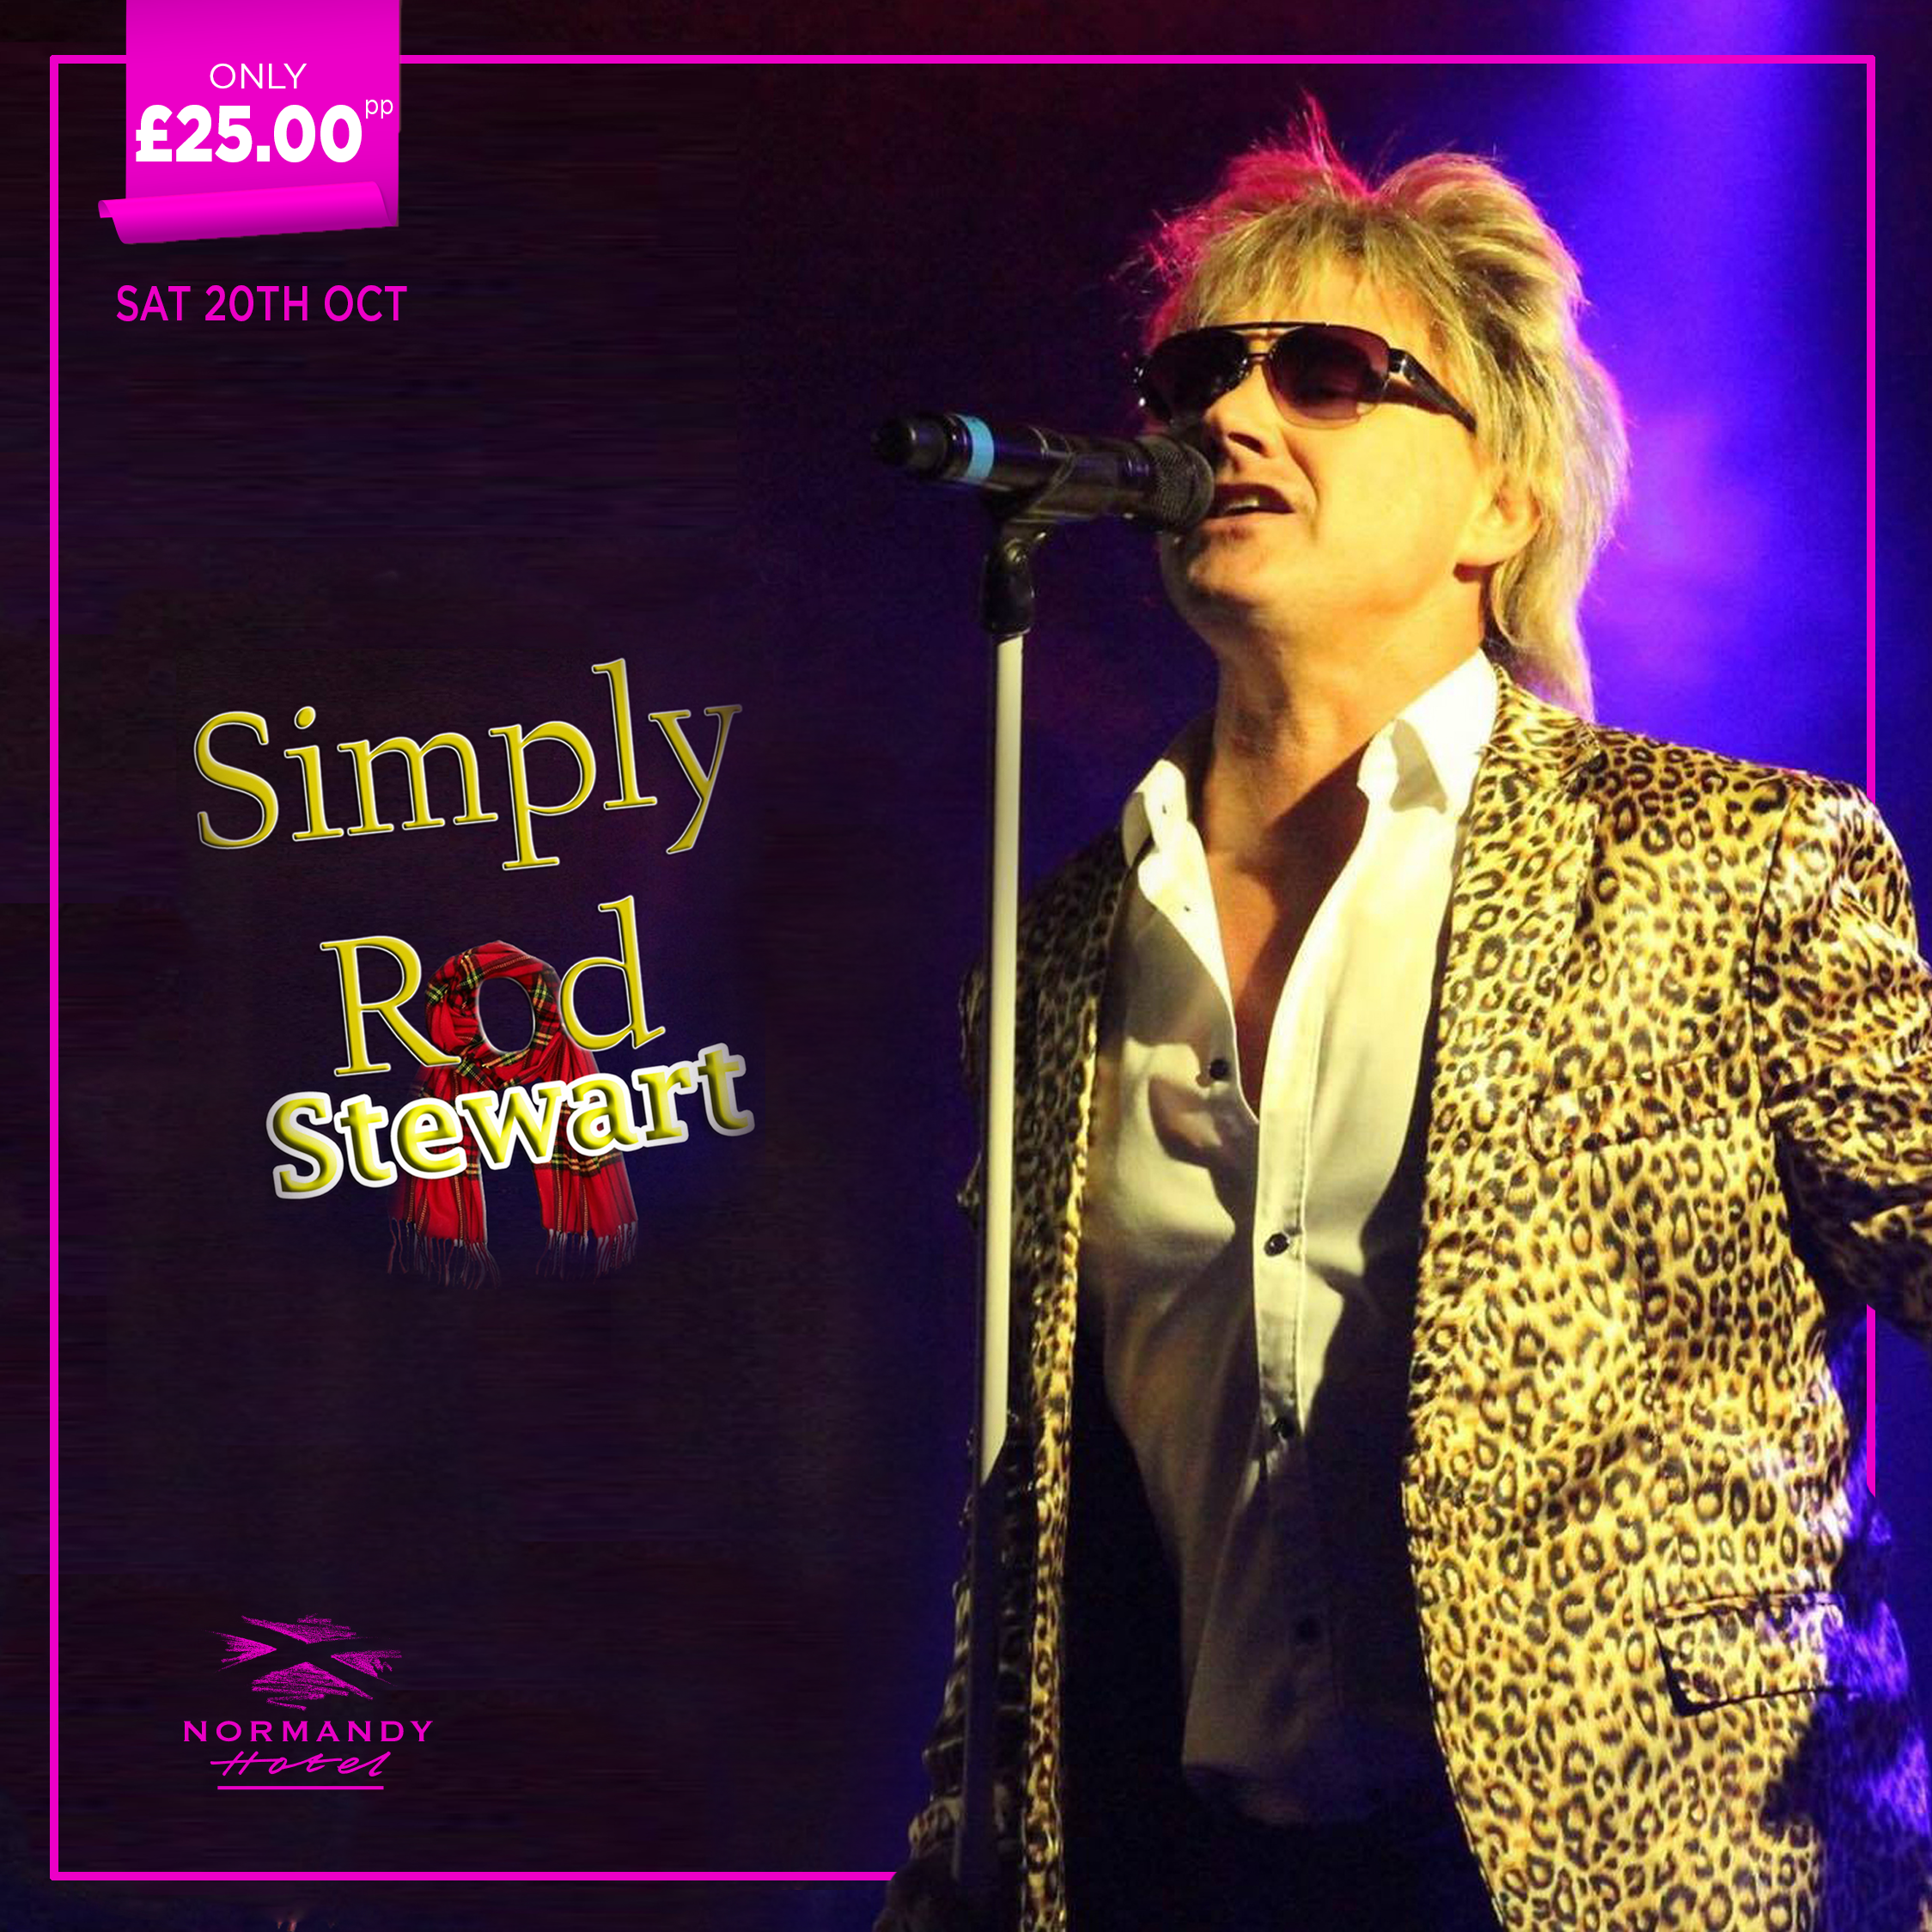 Man dressed as Rod Stewart singing in front of a microphone, Simply Rod Stewart. Tribute Night at the Normandy Hotel, 20th October 2018, £25 per person